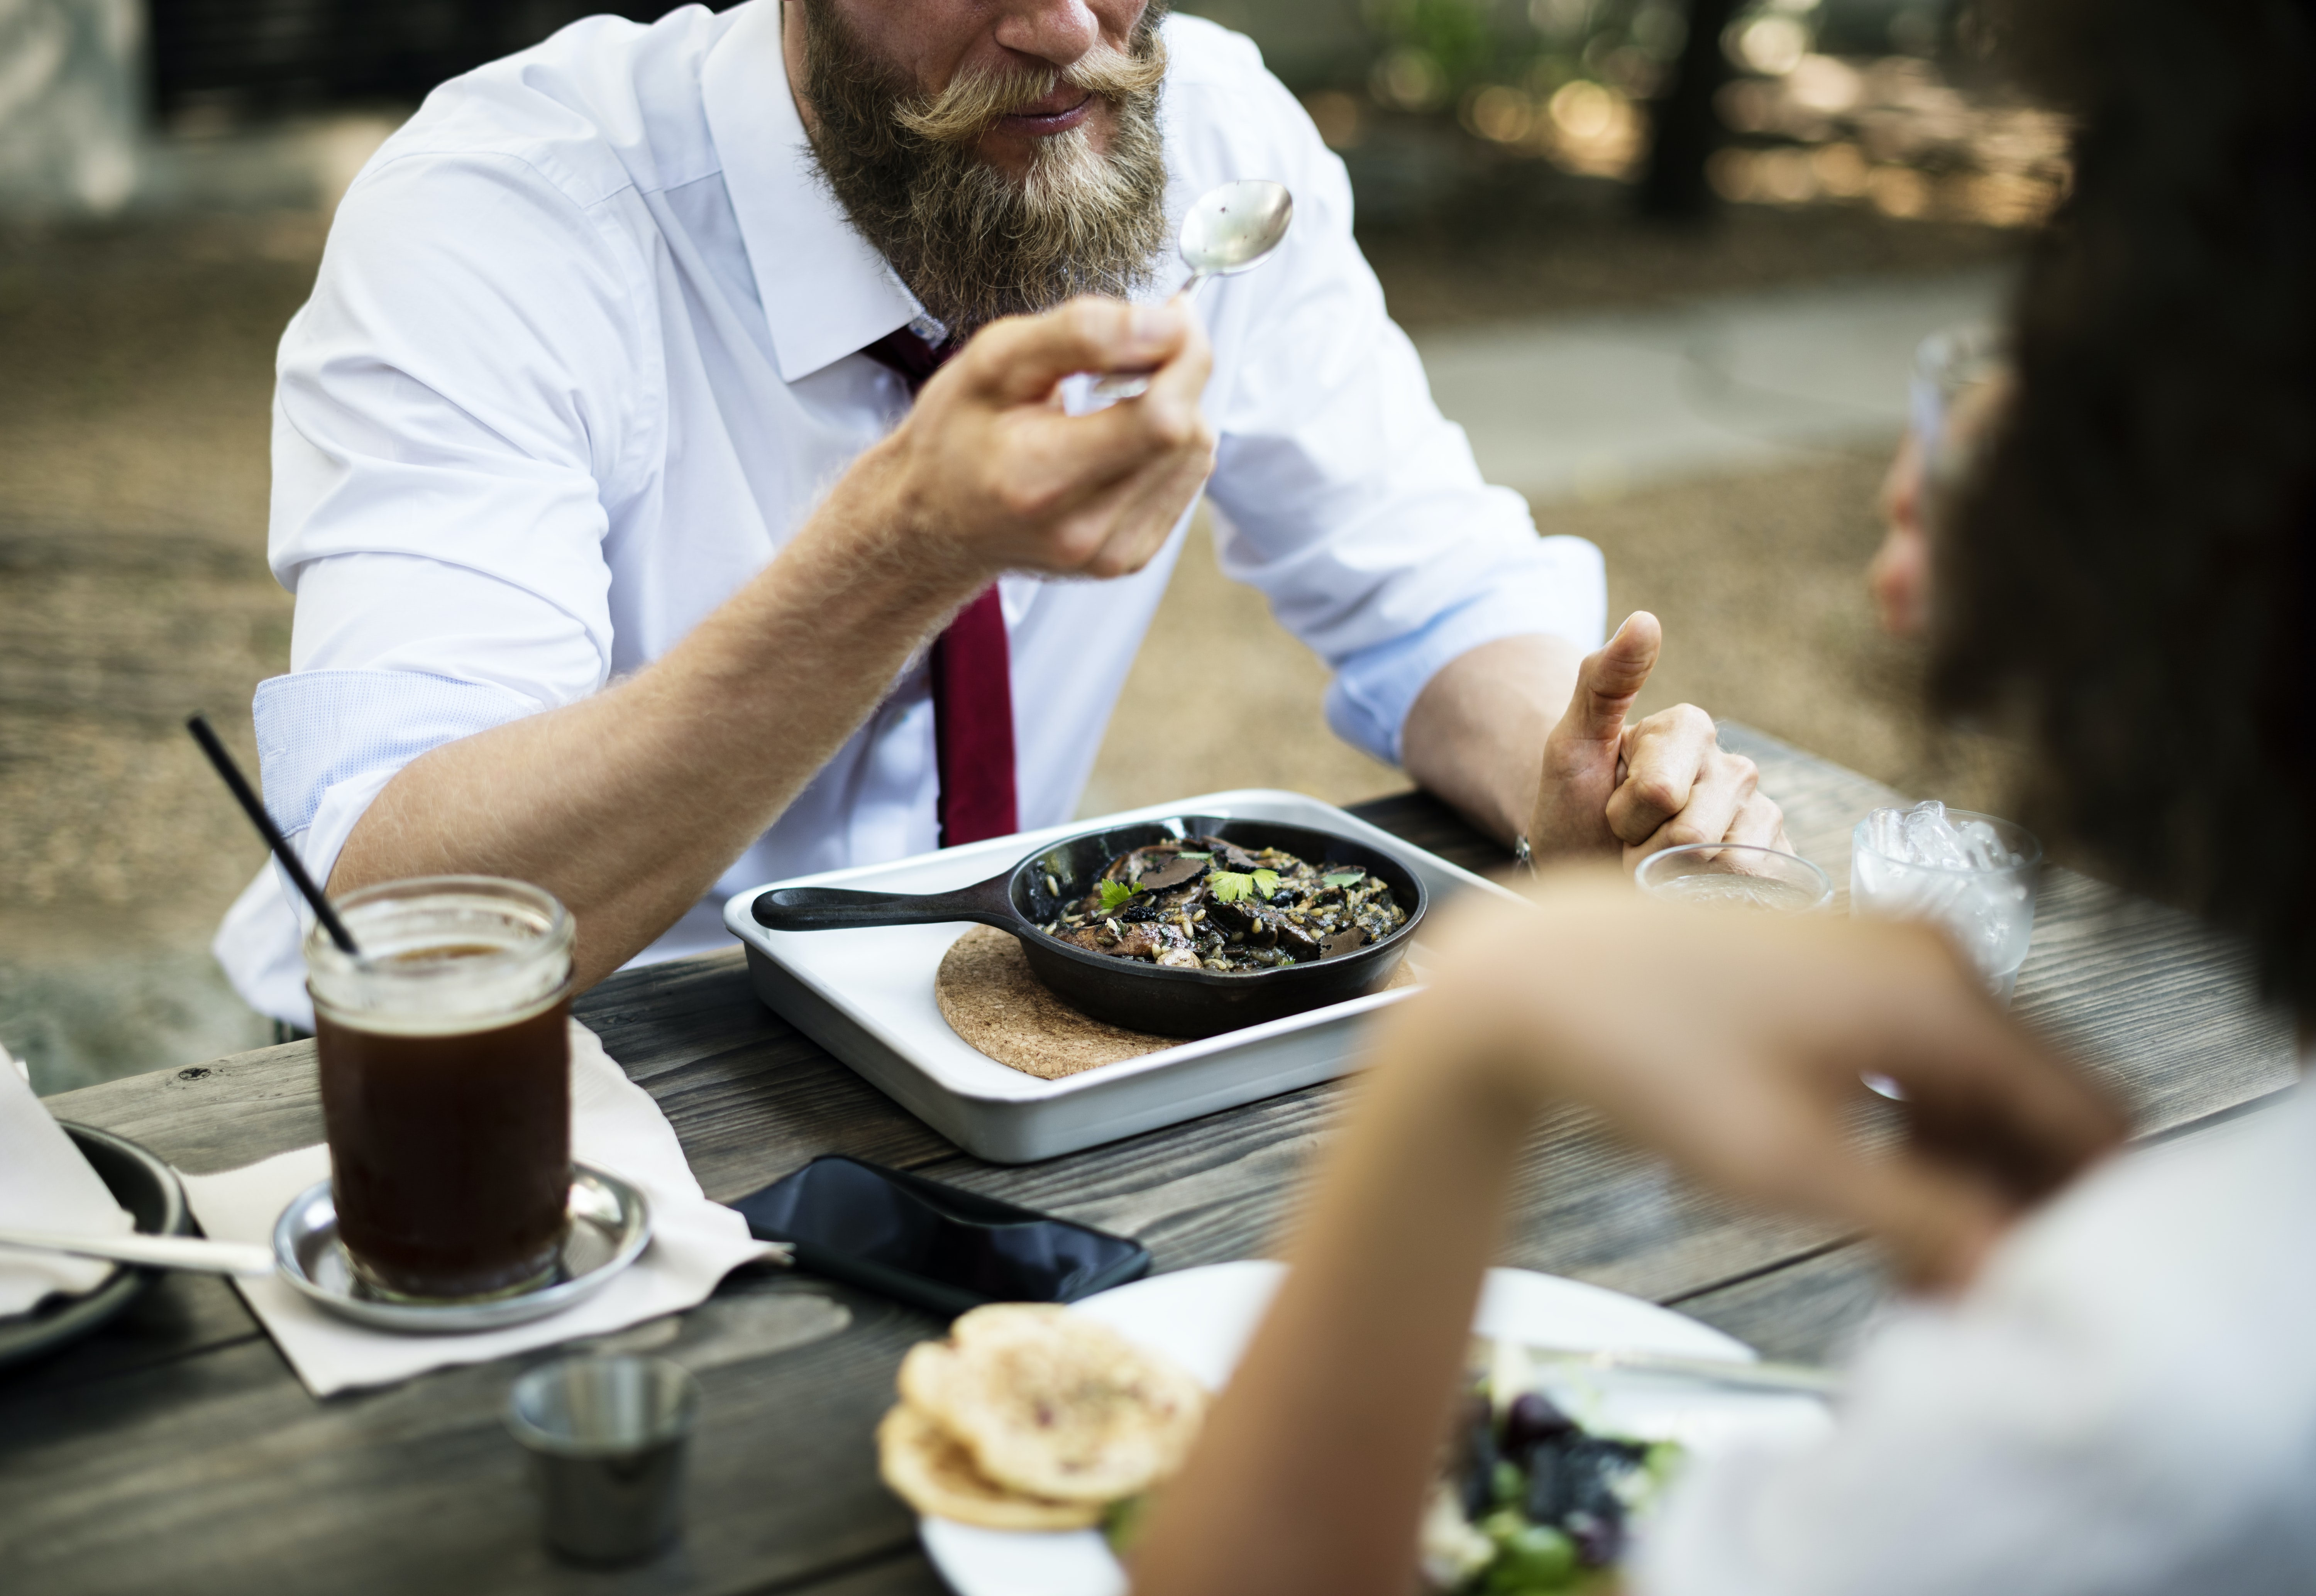 A bearded man eating lunch outside at a picnic table with a woman.